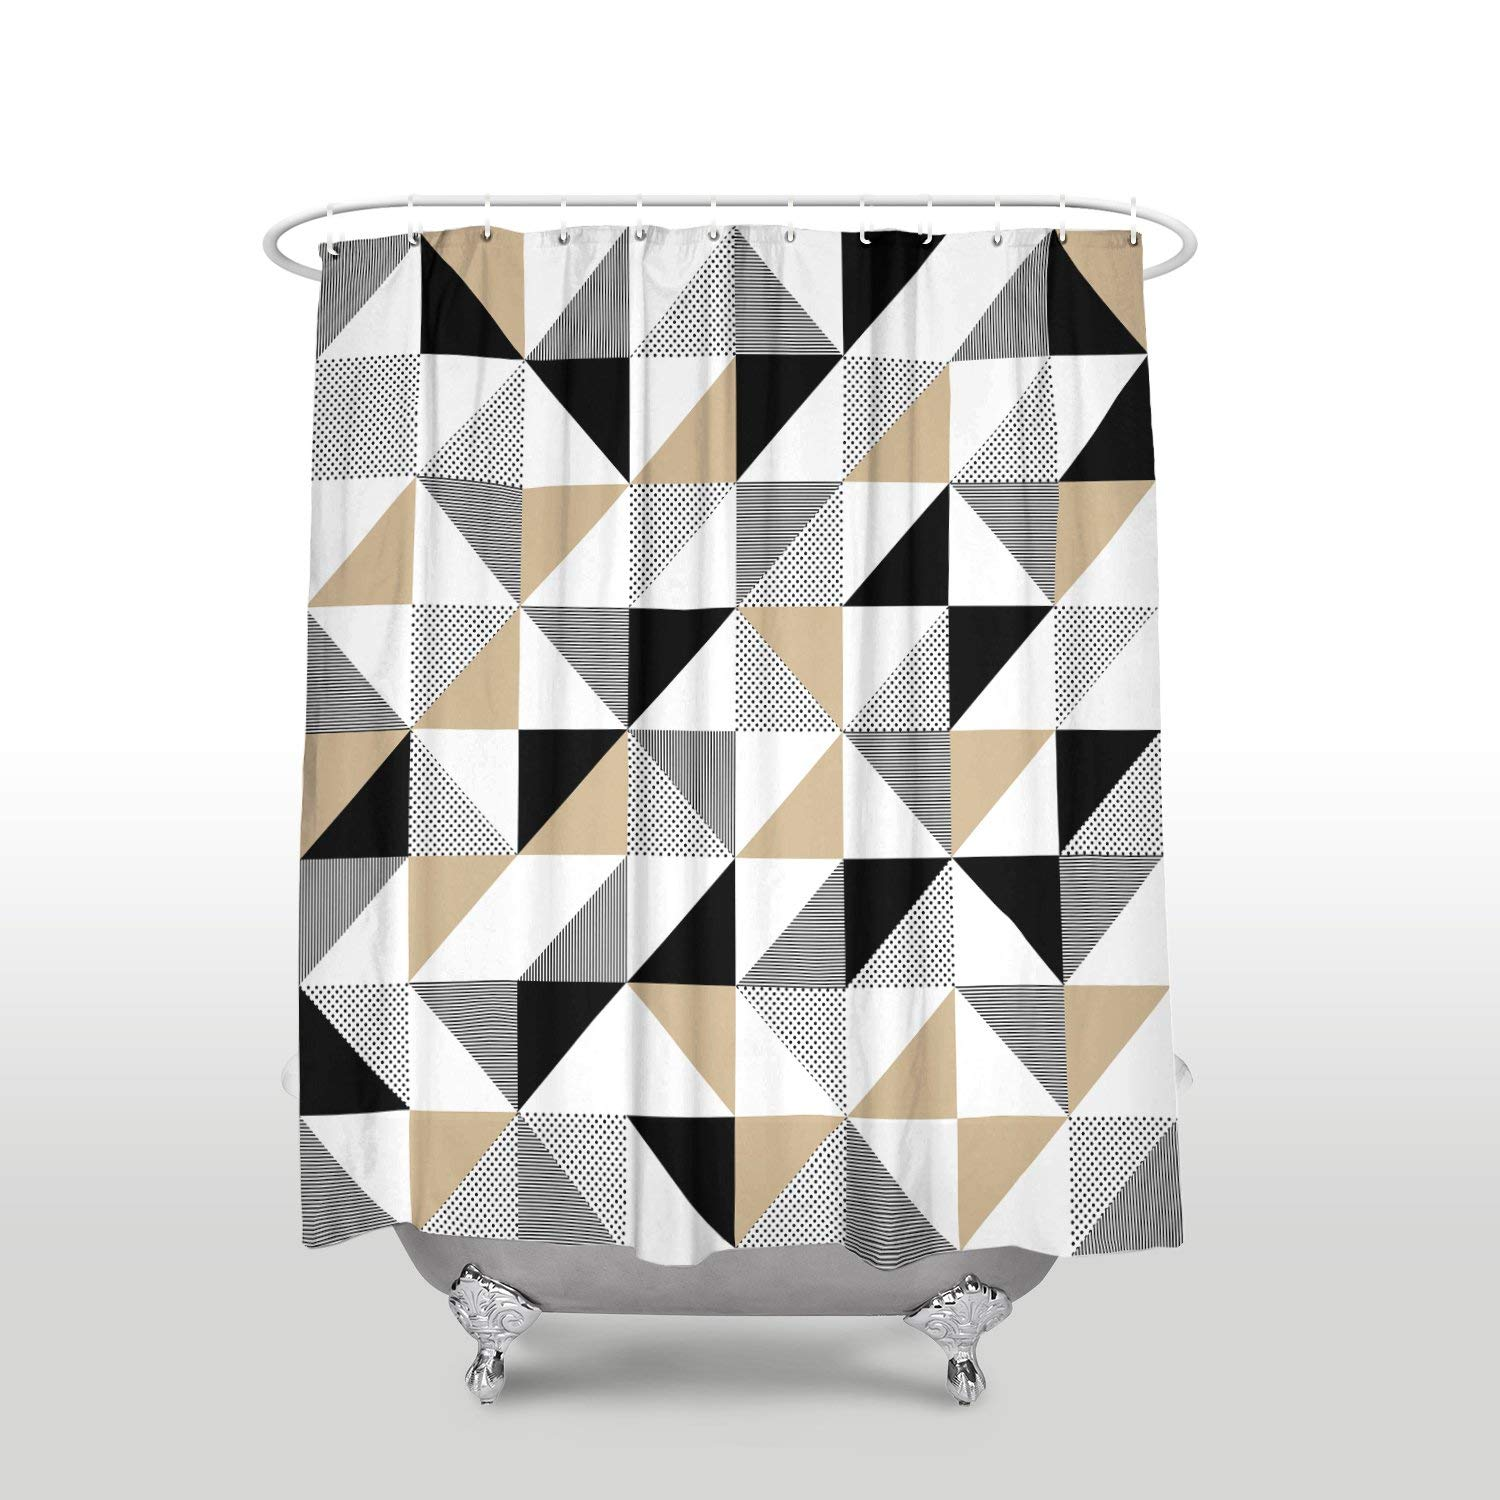 Rainbow Shower Curtain Colorful Abstract Geometric Pattern